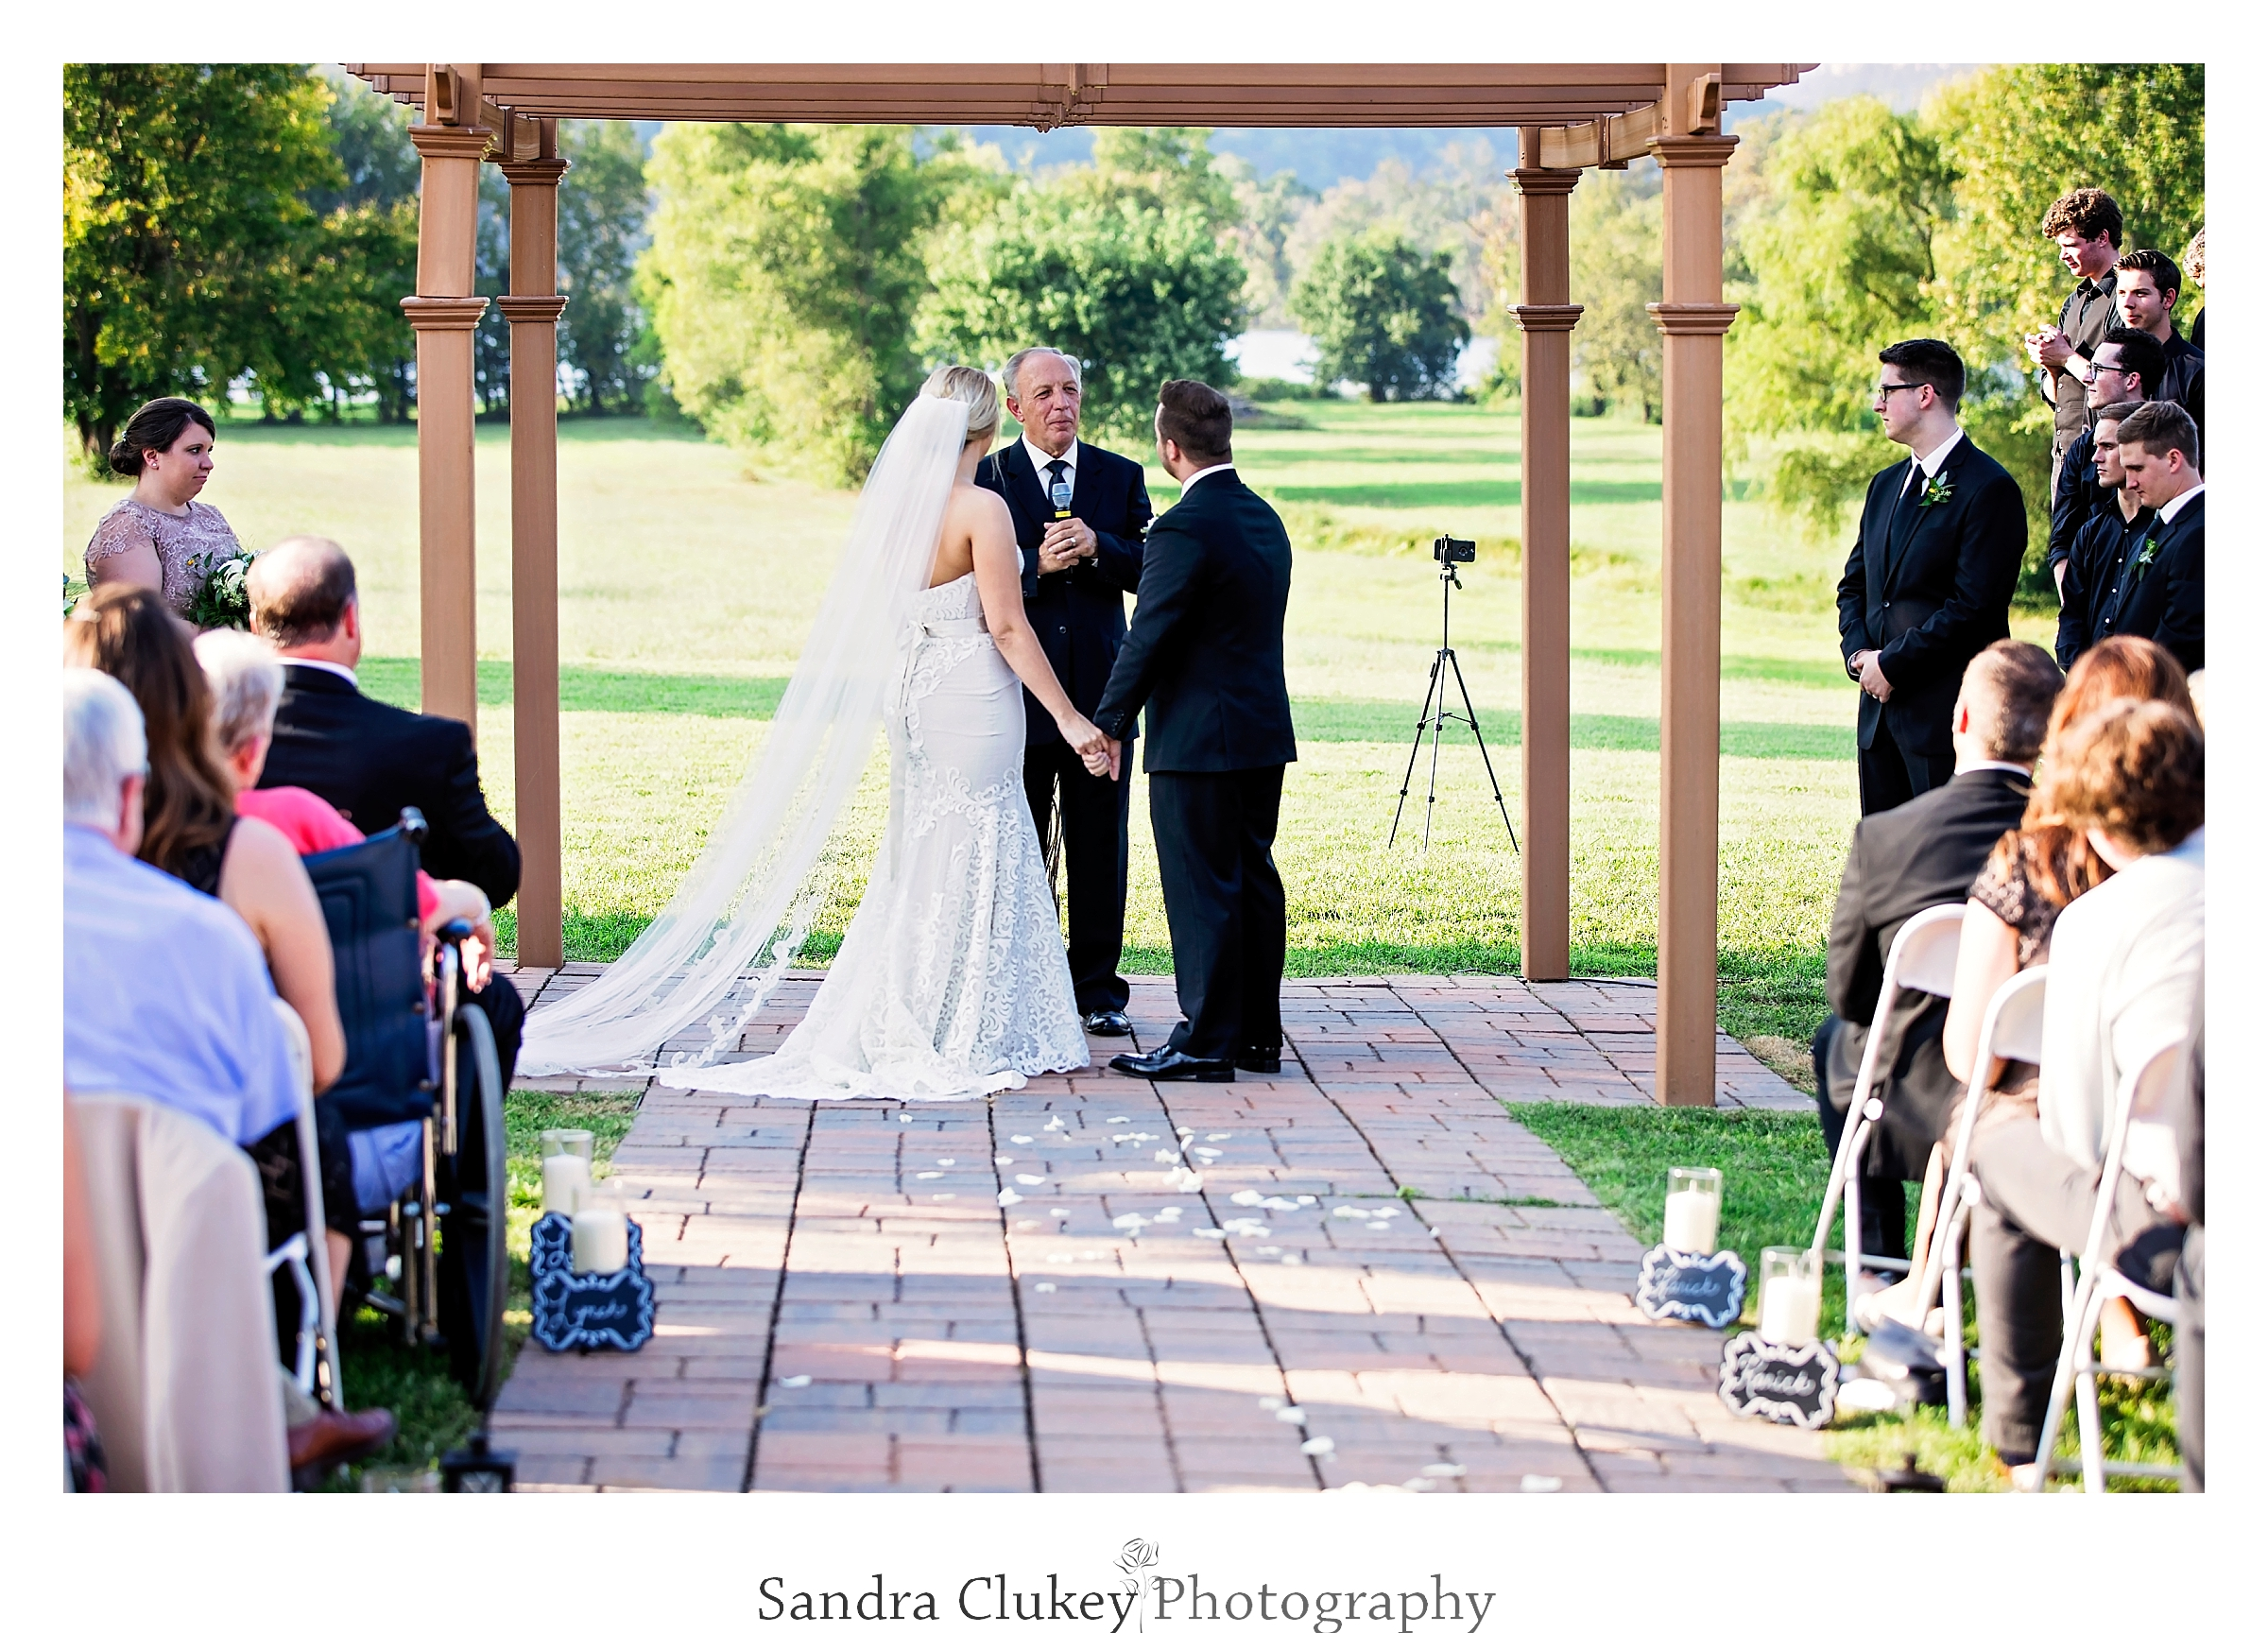 Tennessee RiverPlace wedding venue in Chattanooga Tennessee